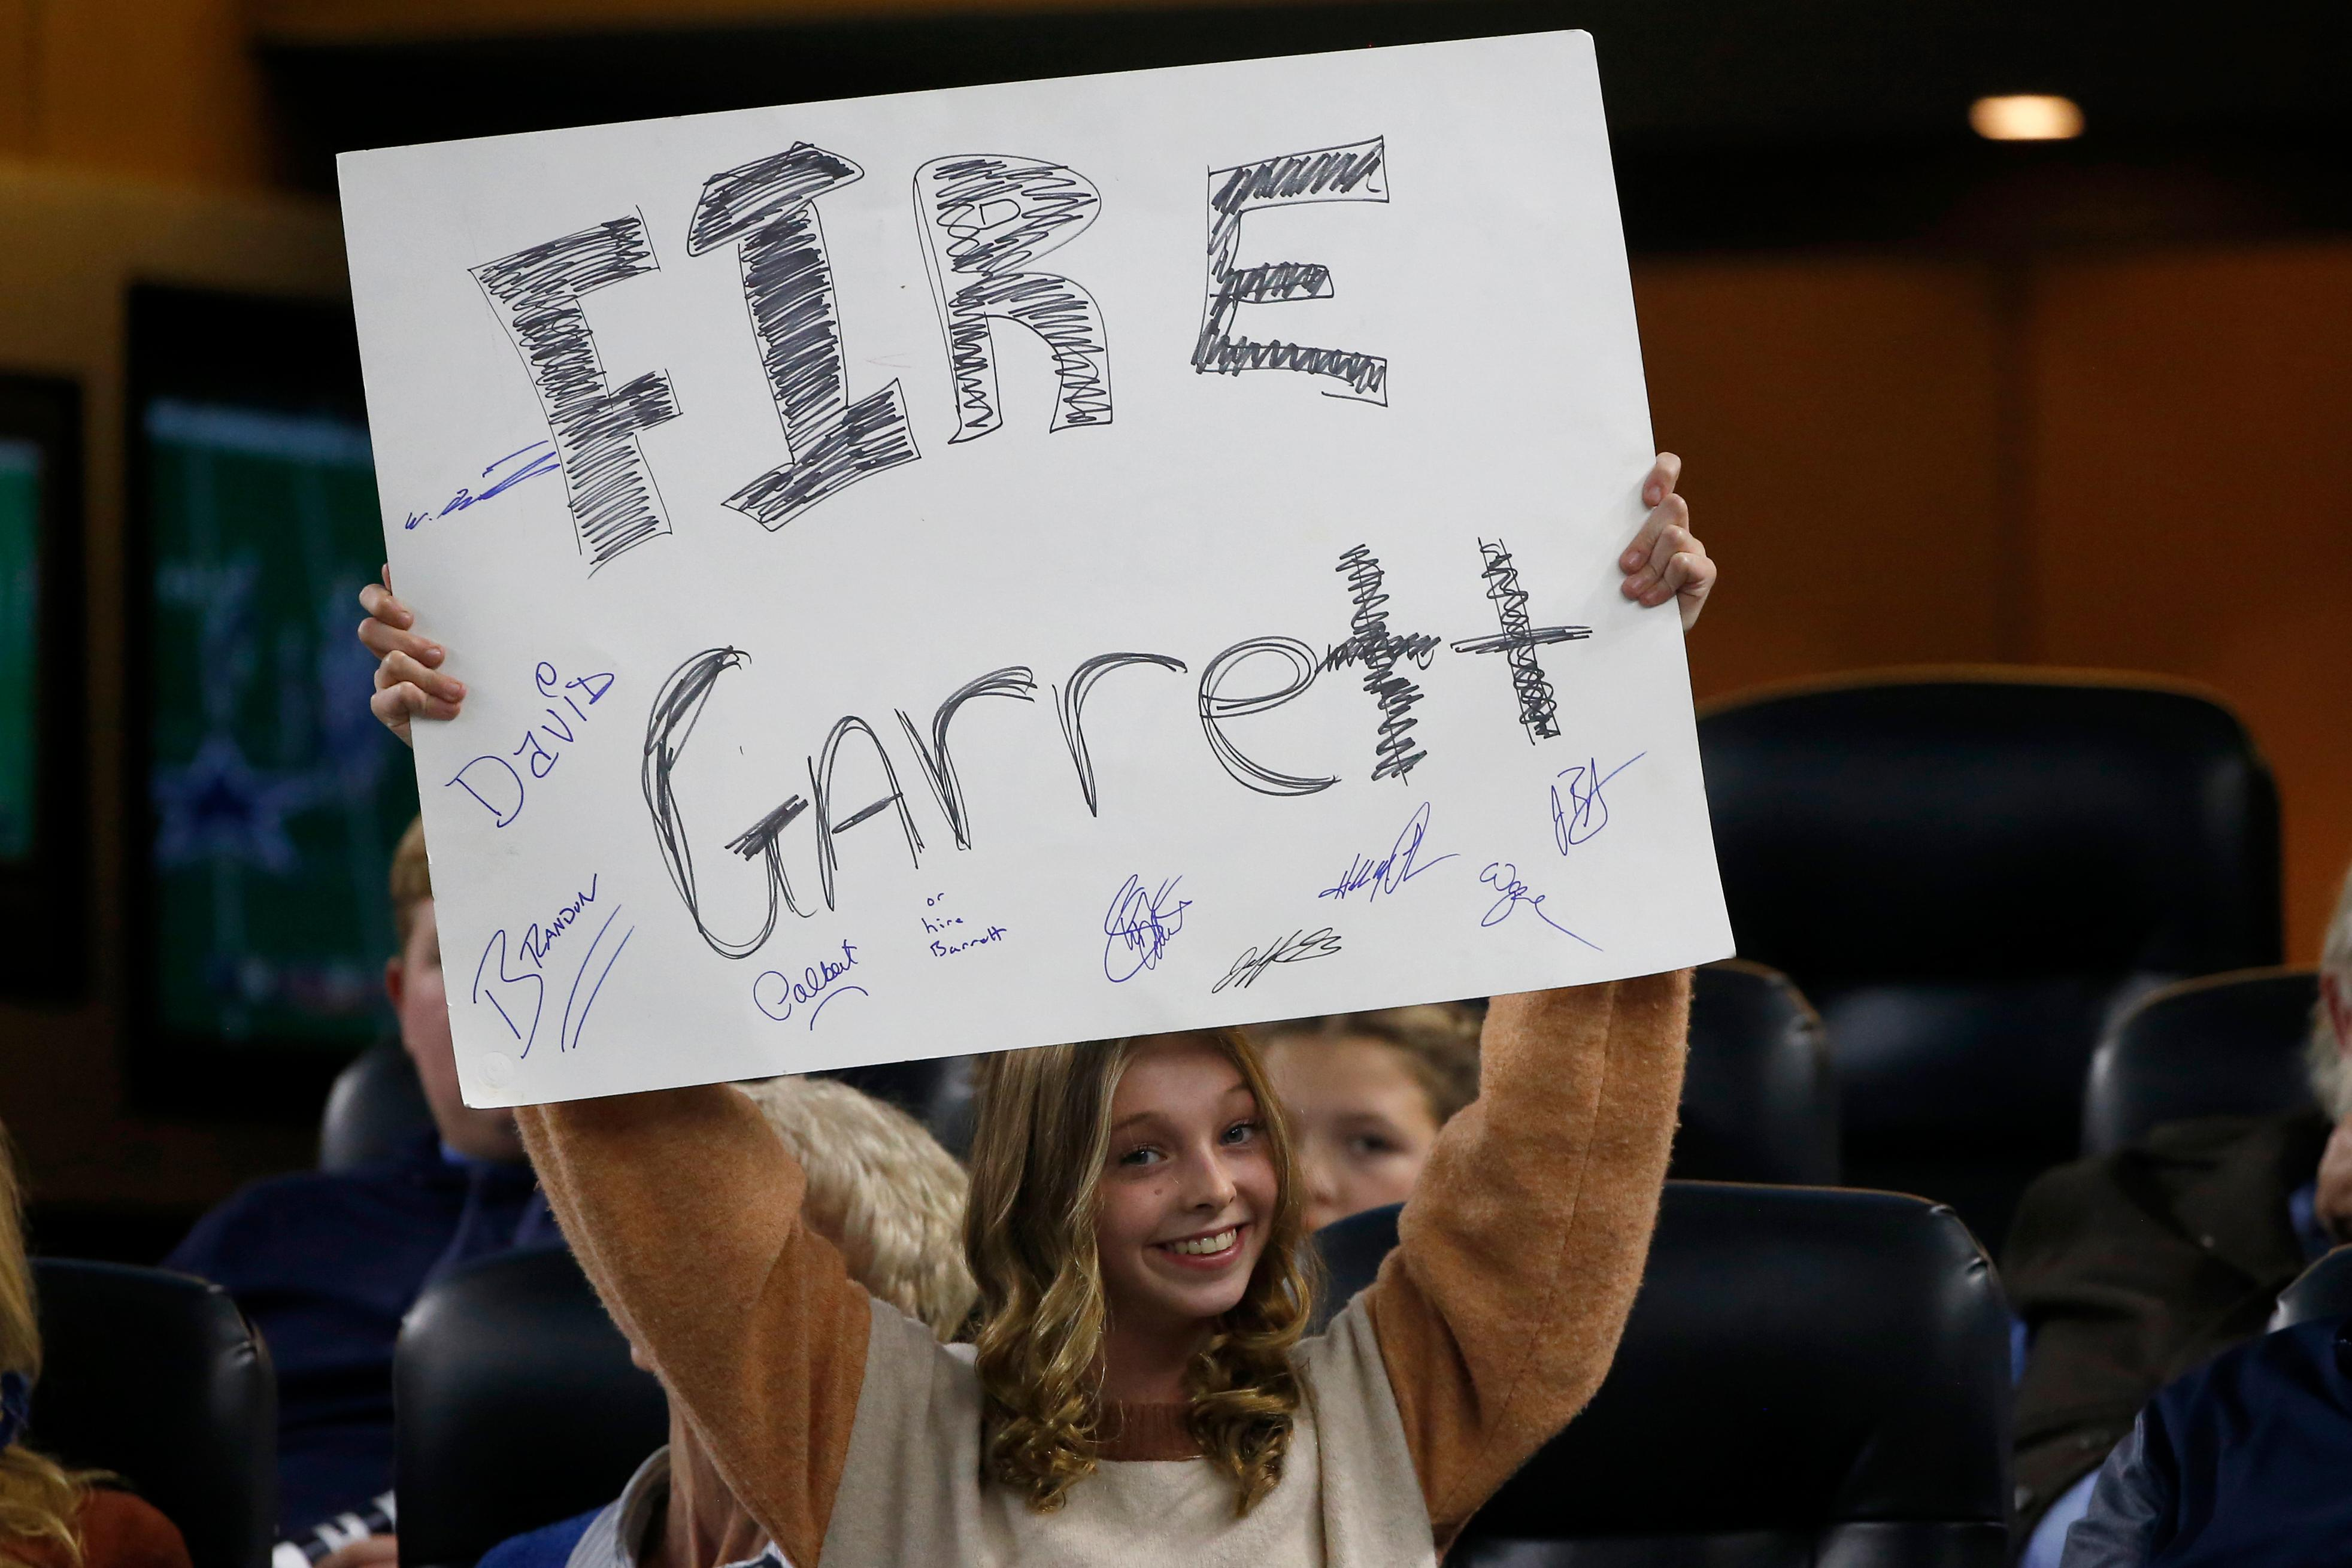 A young fan holds a sign calling for the firing of Dallas Cowboys head coach Jason Garrett in the second half of an NFL football game against the Buffalo Bills in Arlington, Texas, Thursday, Nov. 28, 2019. (AP Photo/Ron Jenkins)